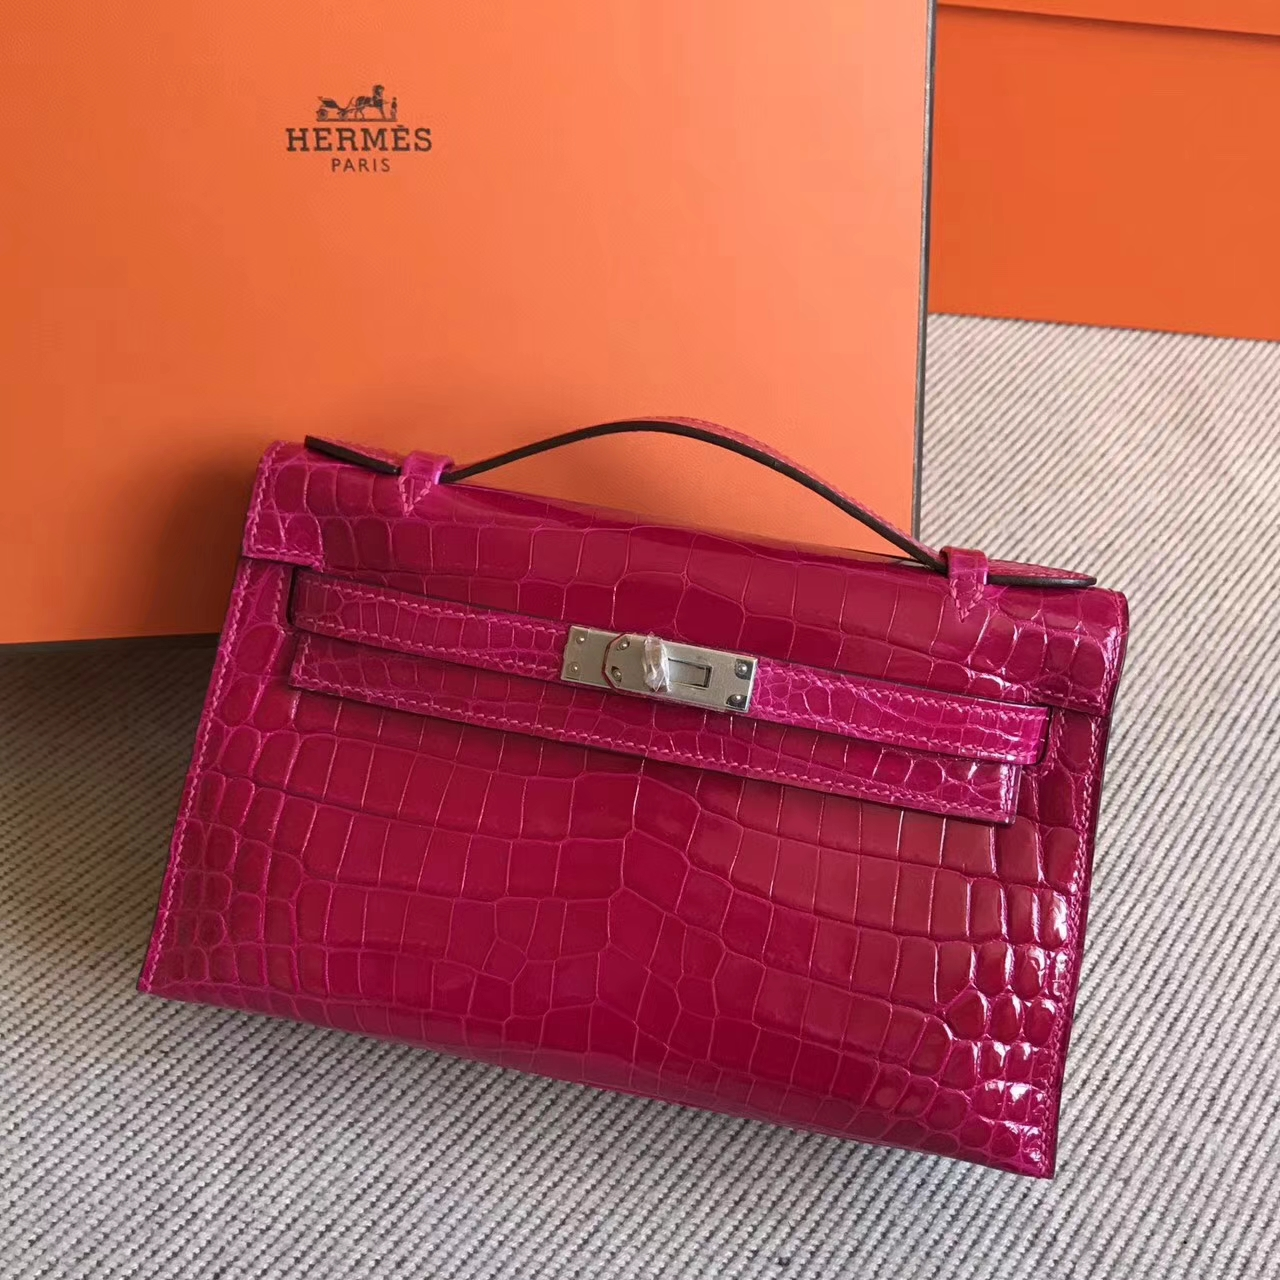 New Pretty Hermes Hot Pink Shiny Crocodile Leather Minikelly Bag22cm